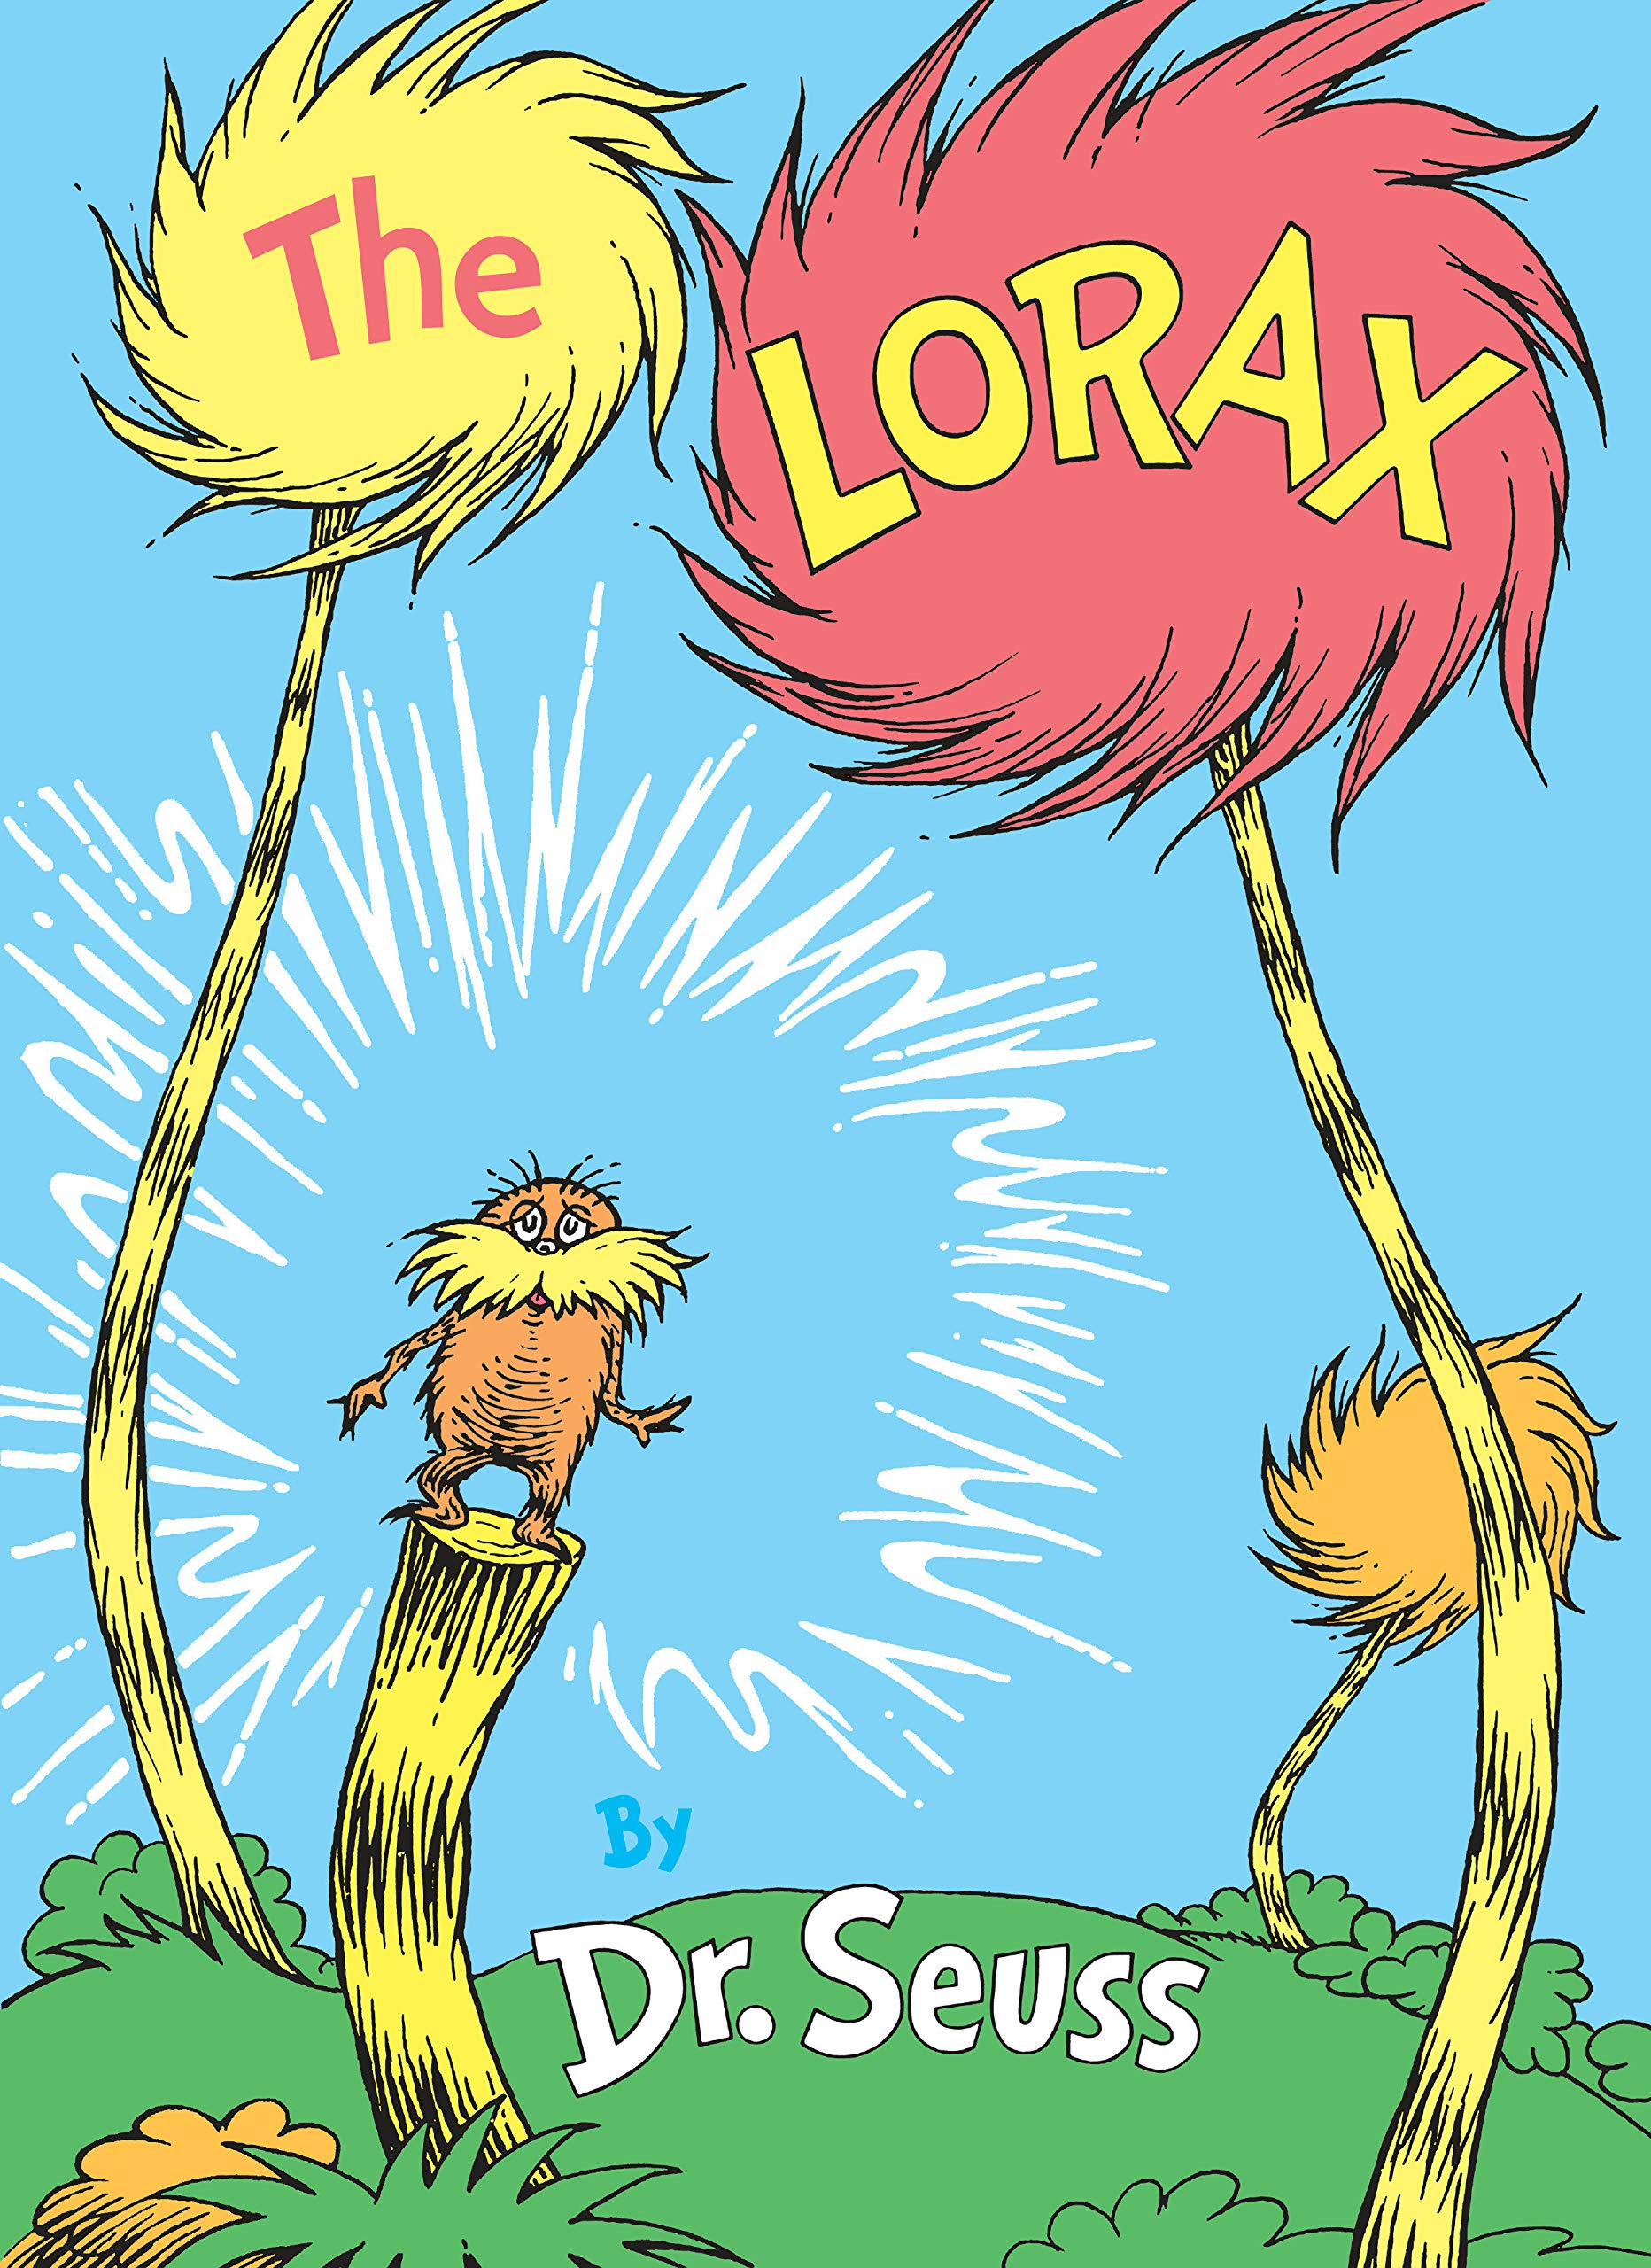 The Best Picture Book Characters of All Time - The Lorax.jpg